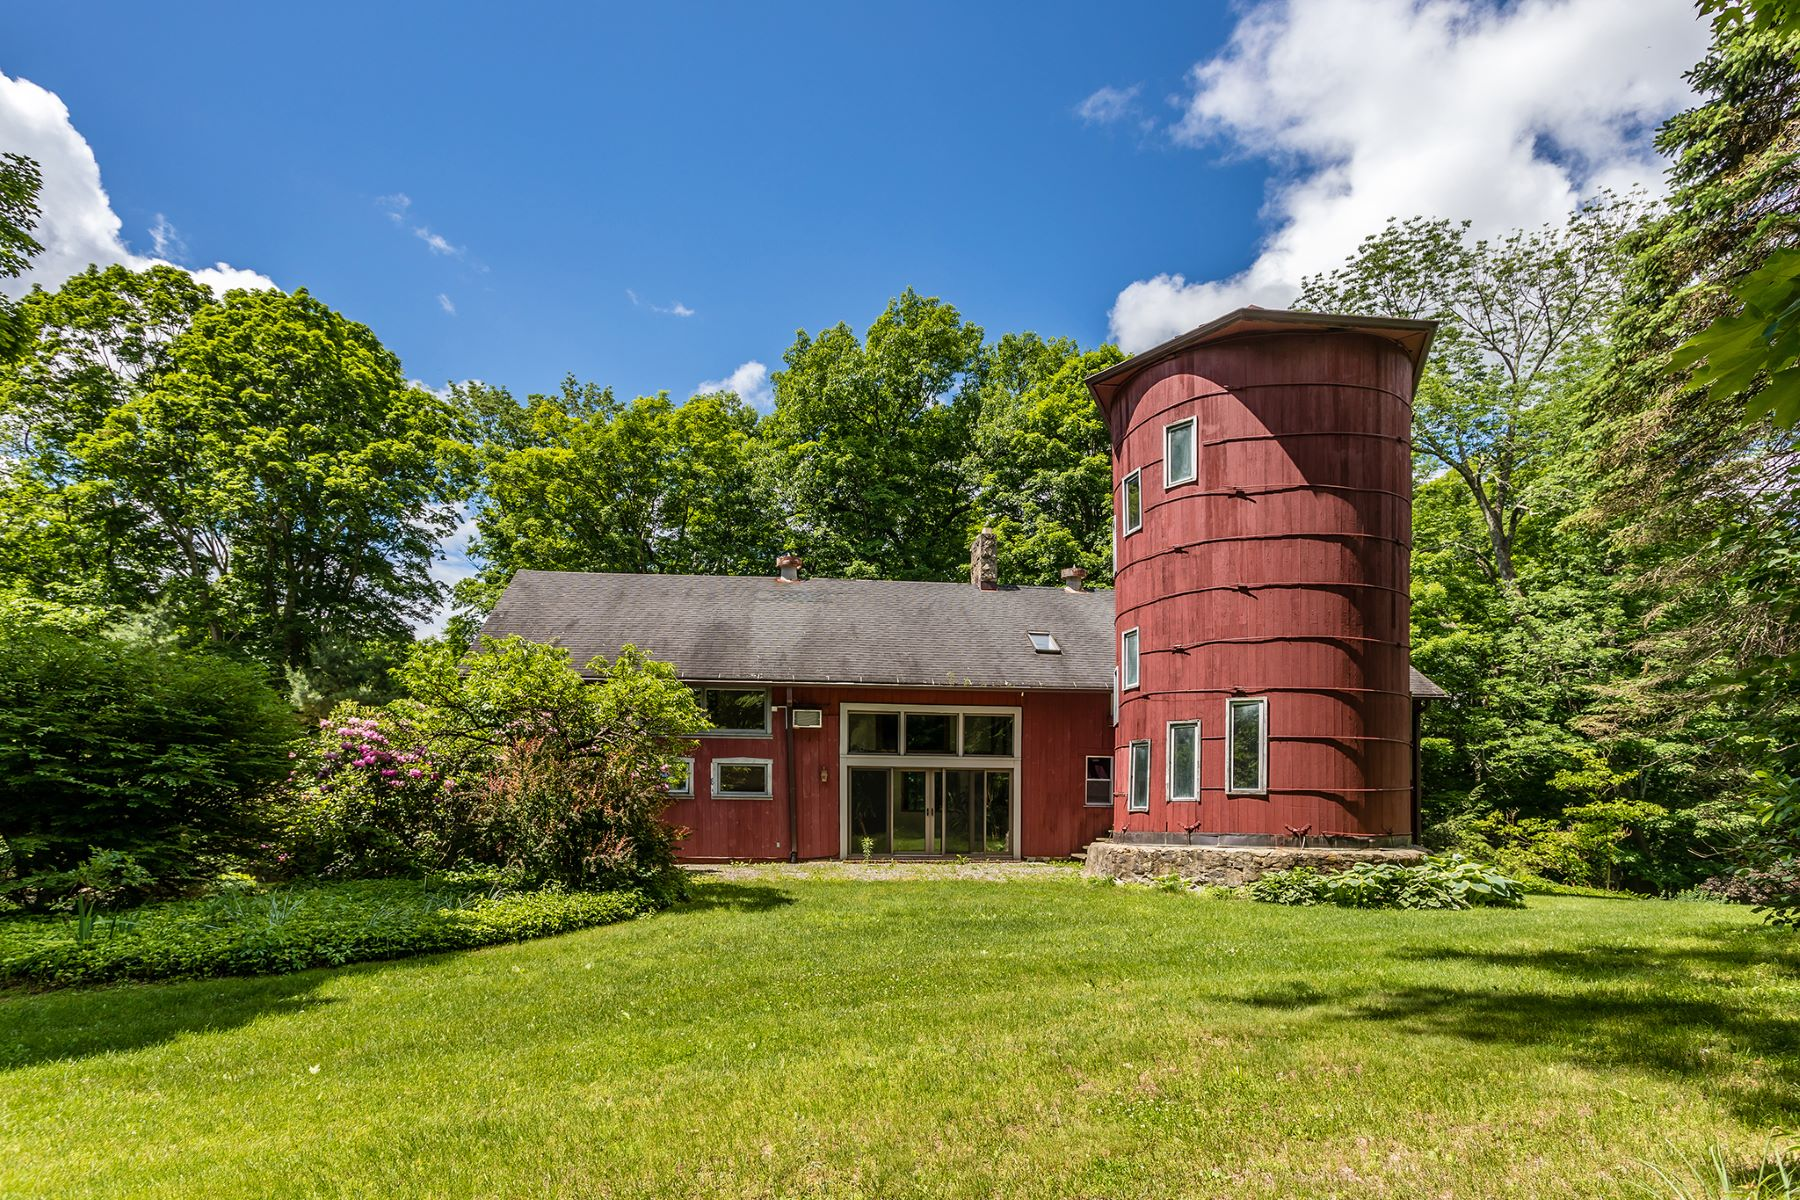 Single Family Homes for Sale at Barn Living 391 Kent Cornwall Road Kent, Connecticut 06757 United States